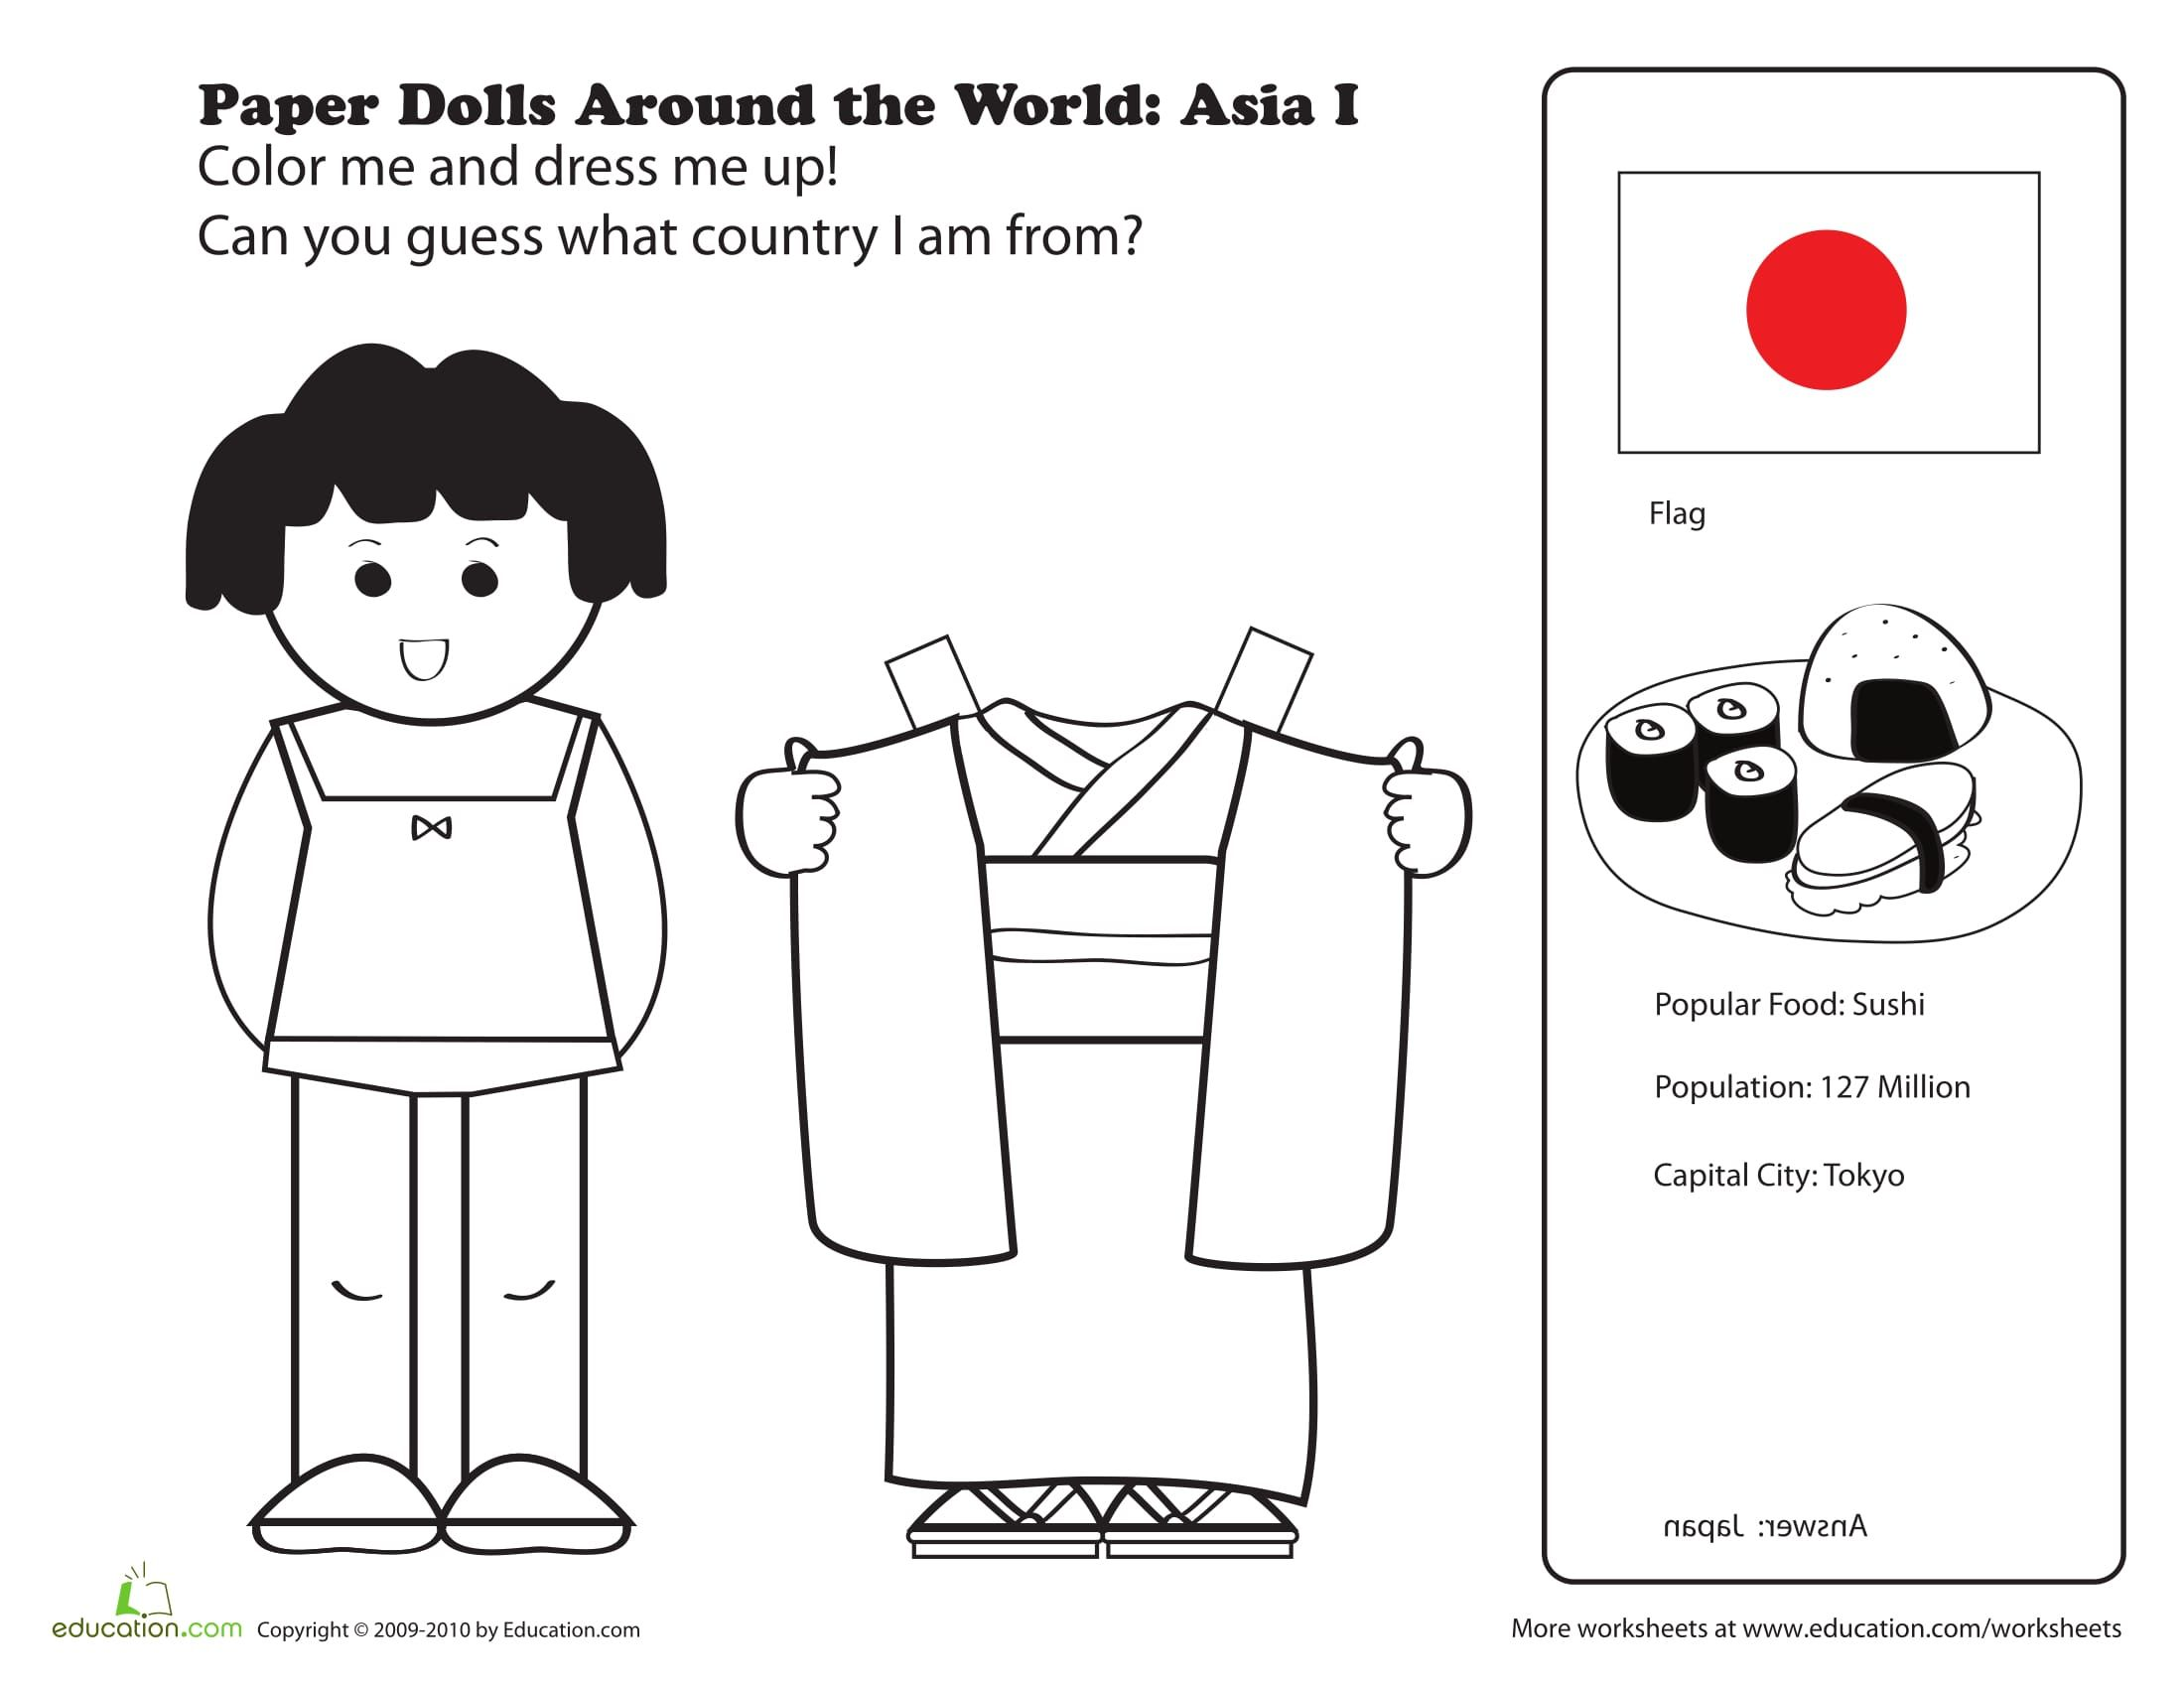 Fun Japanese Paper Doll For Geography Class On Japan Japan Craft